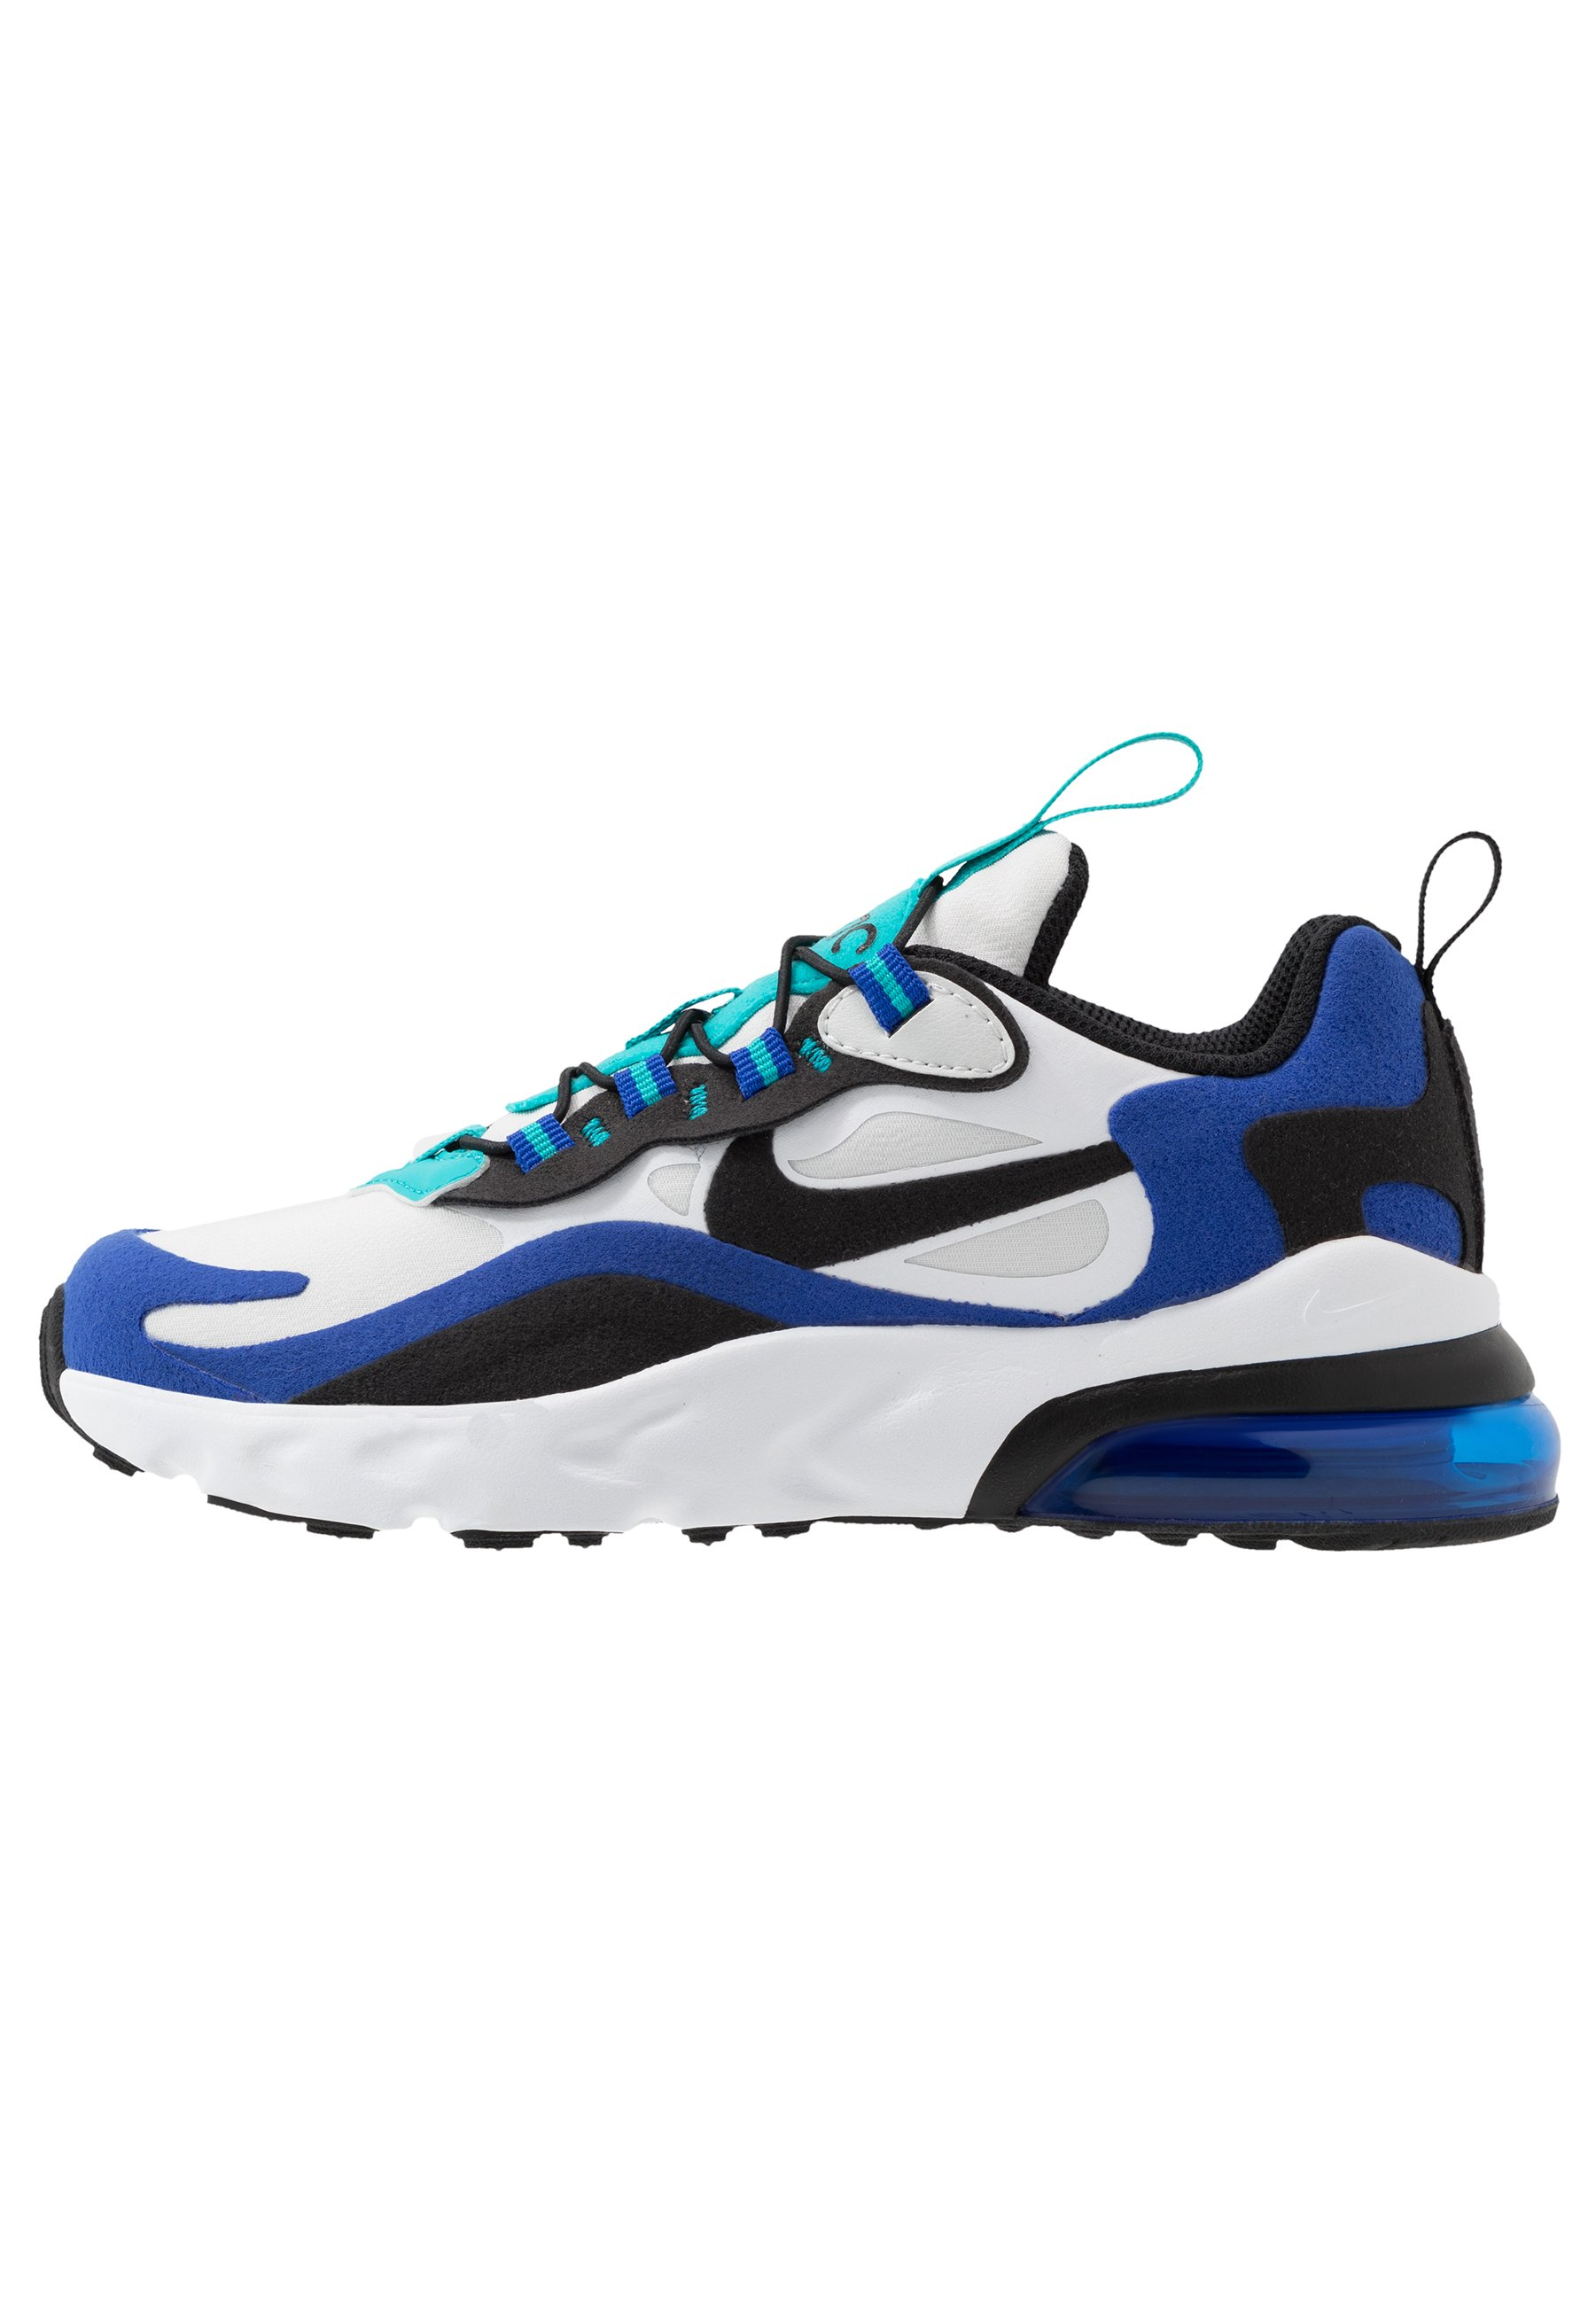 NIKE AIR MAX 270 RT BP Sneakers laag whiteblackhyper blueoracle aqua